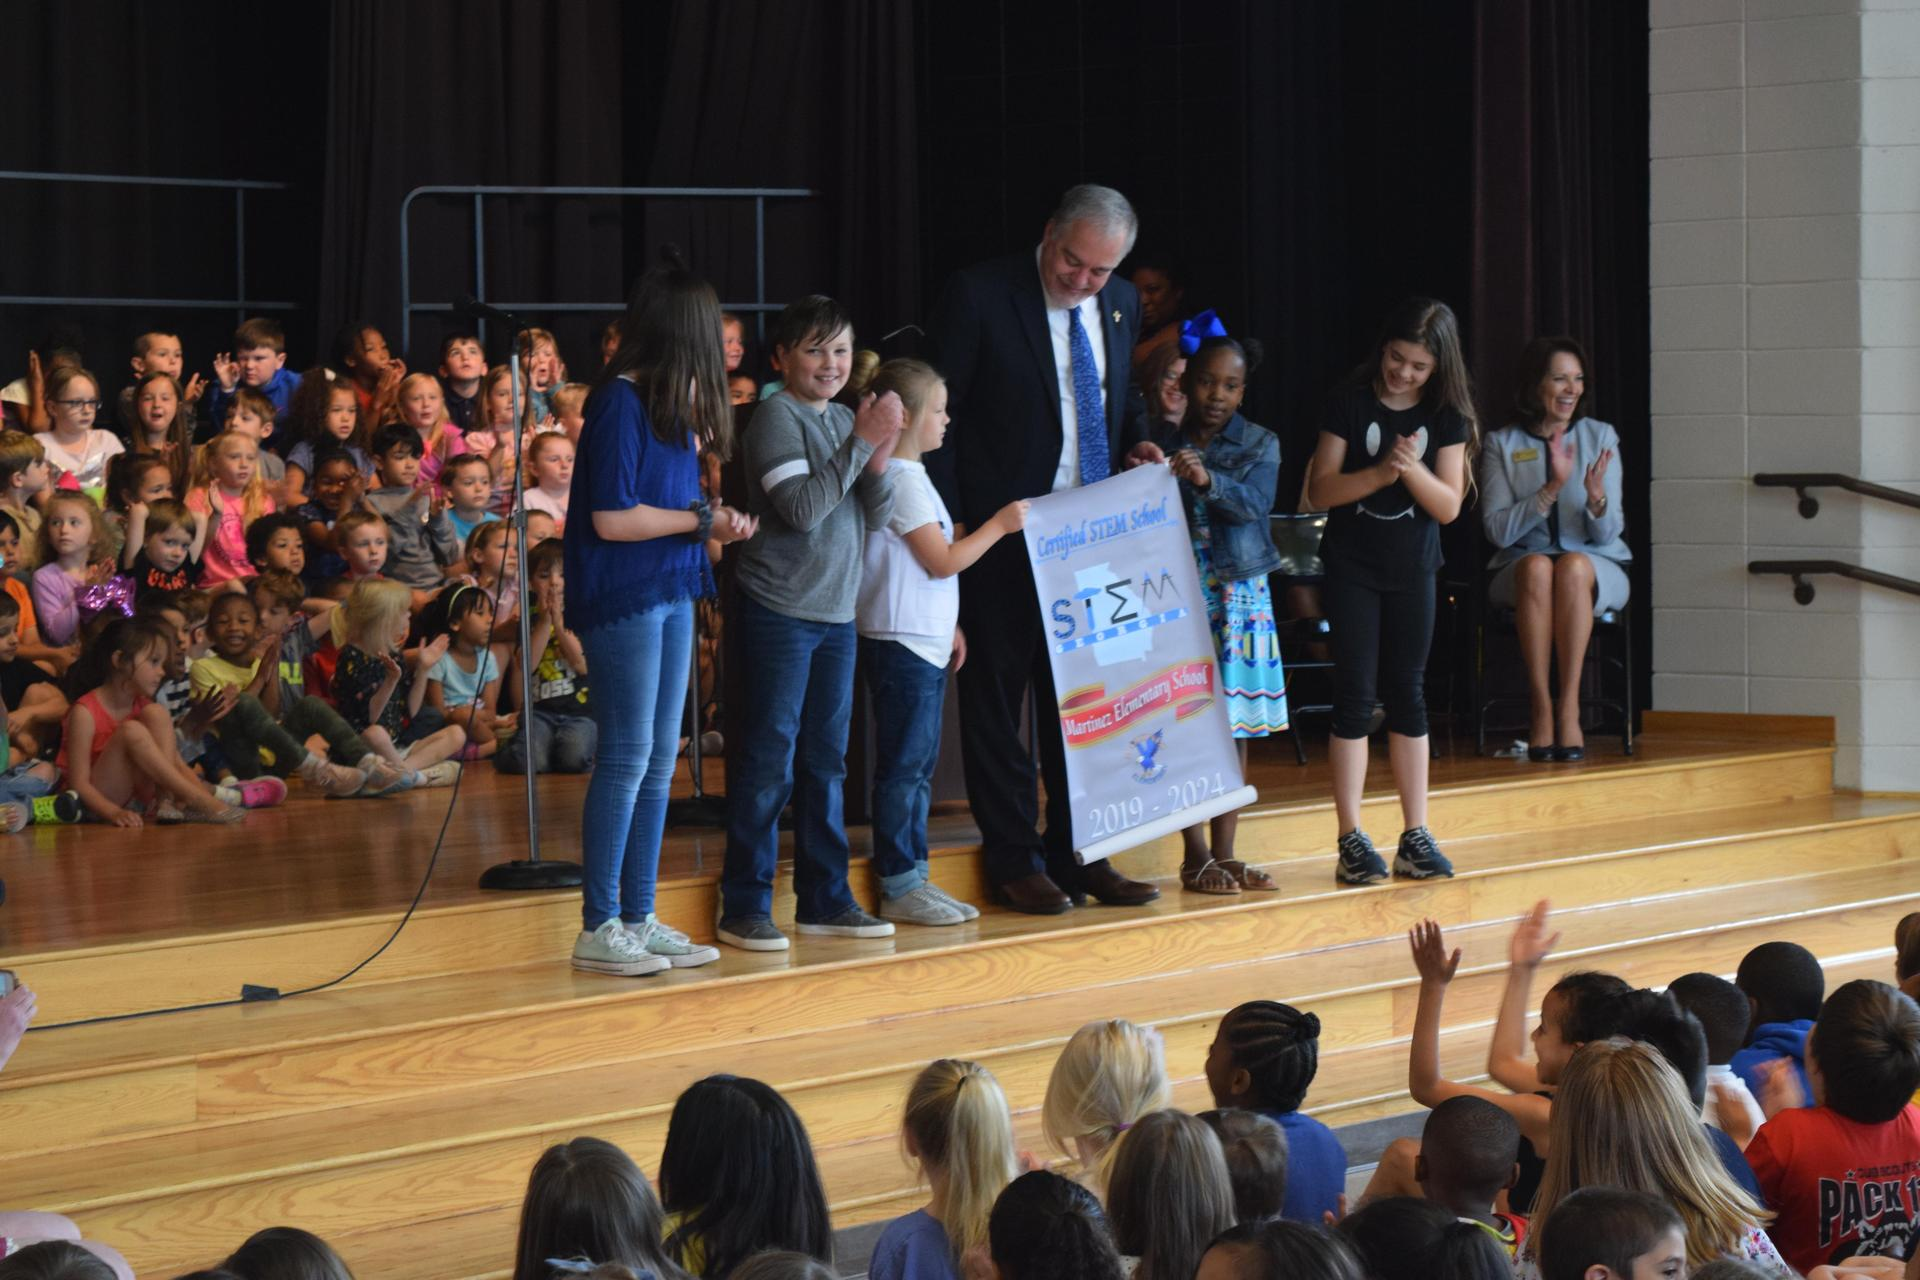 Assembly at Martinez Elementary School